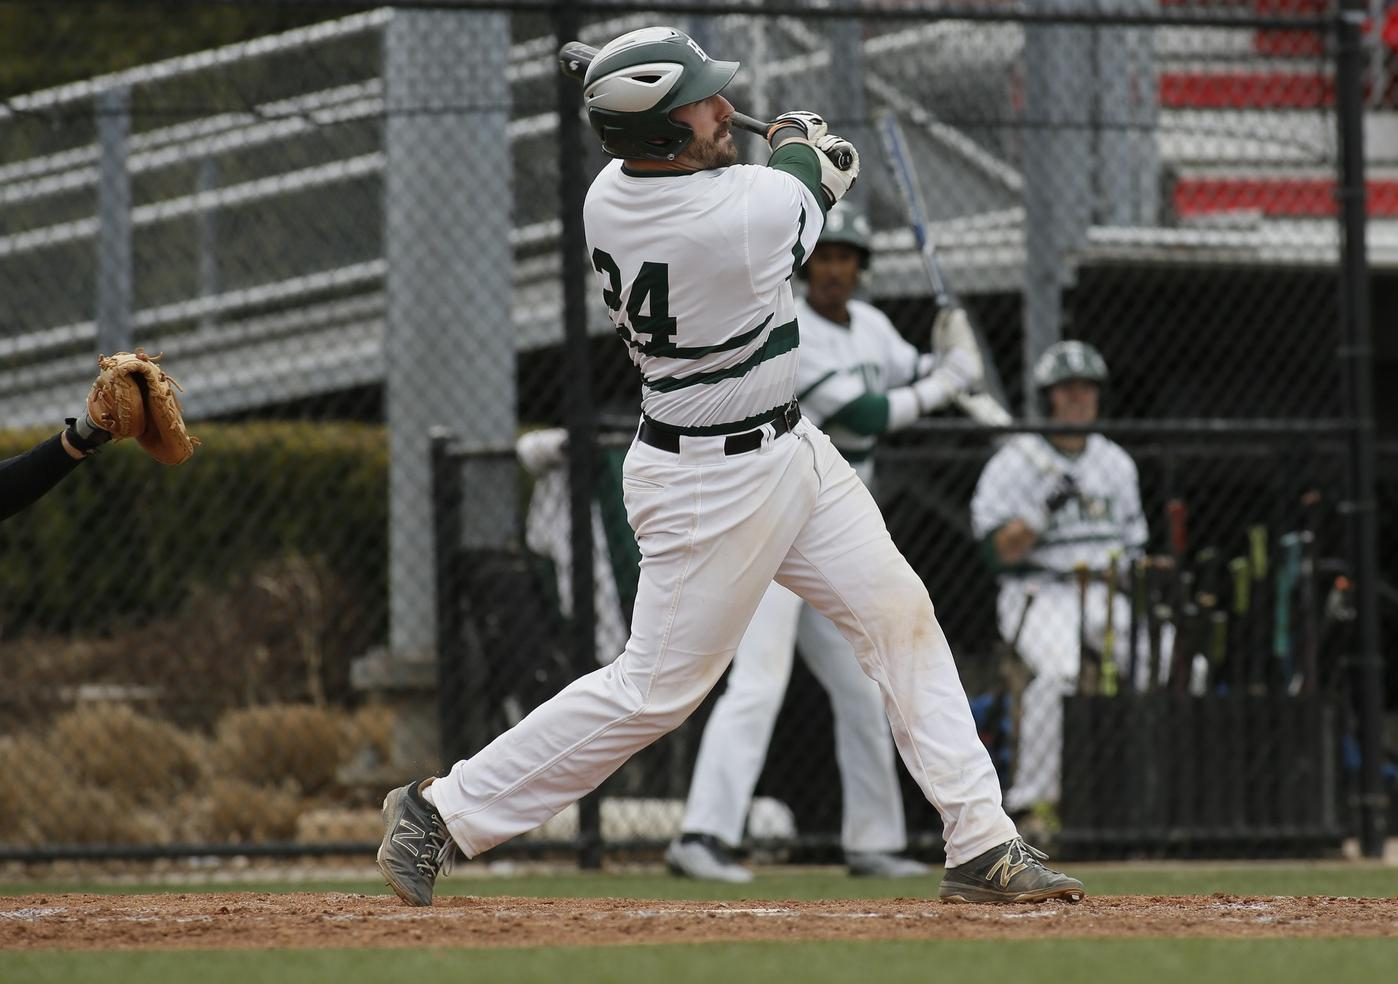 Micomonaco earns D3Baseball.com Team of the Week honors